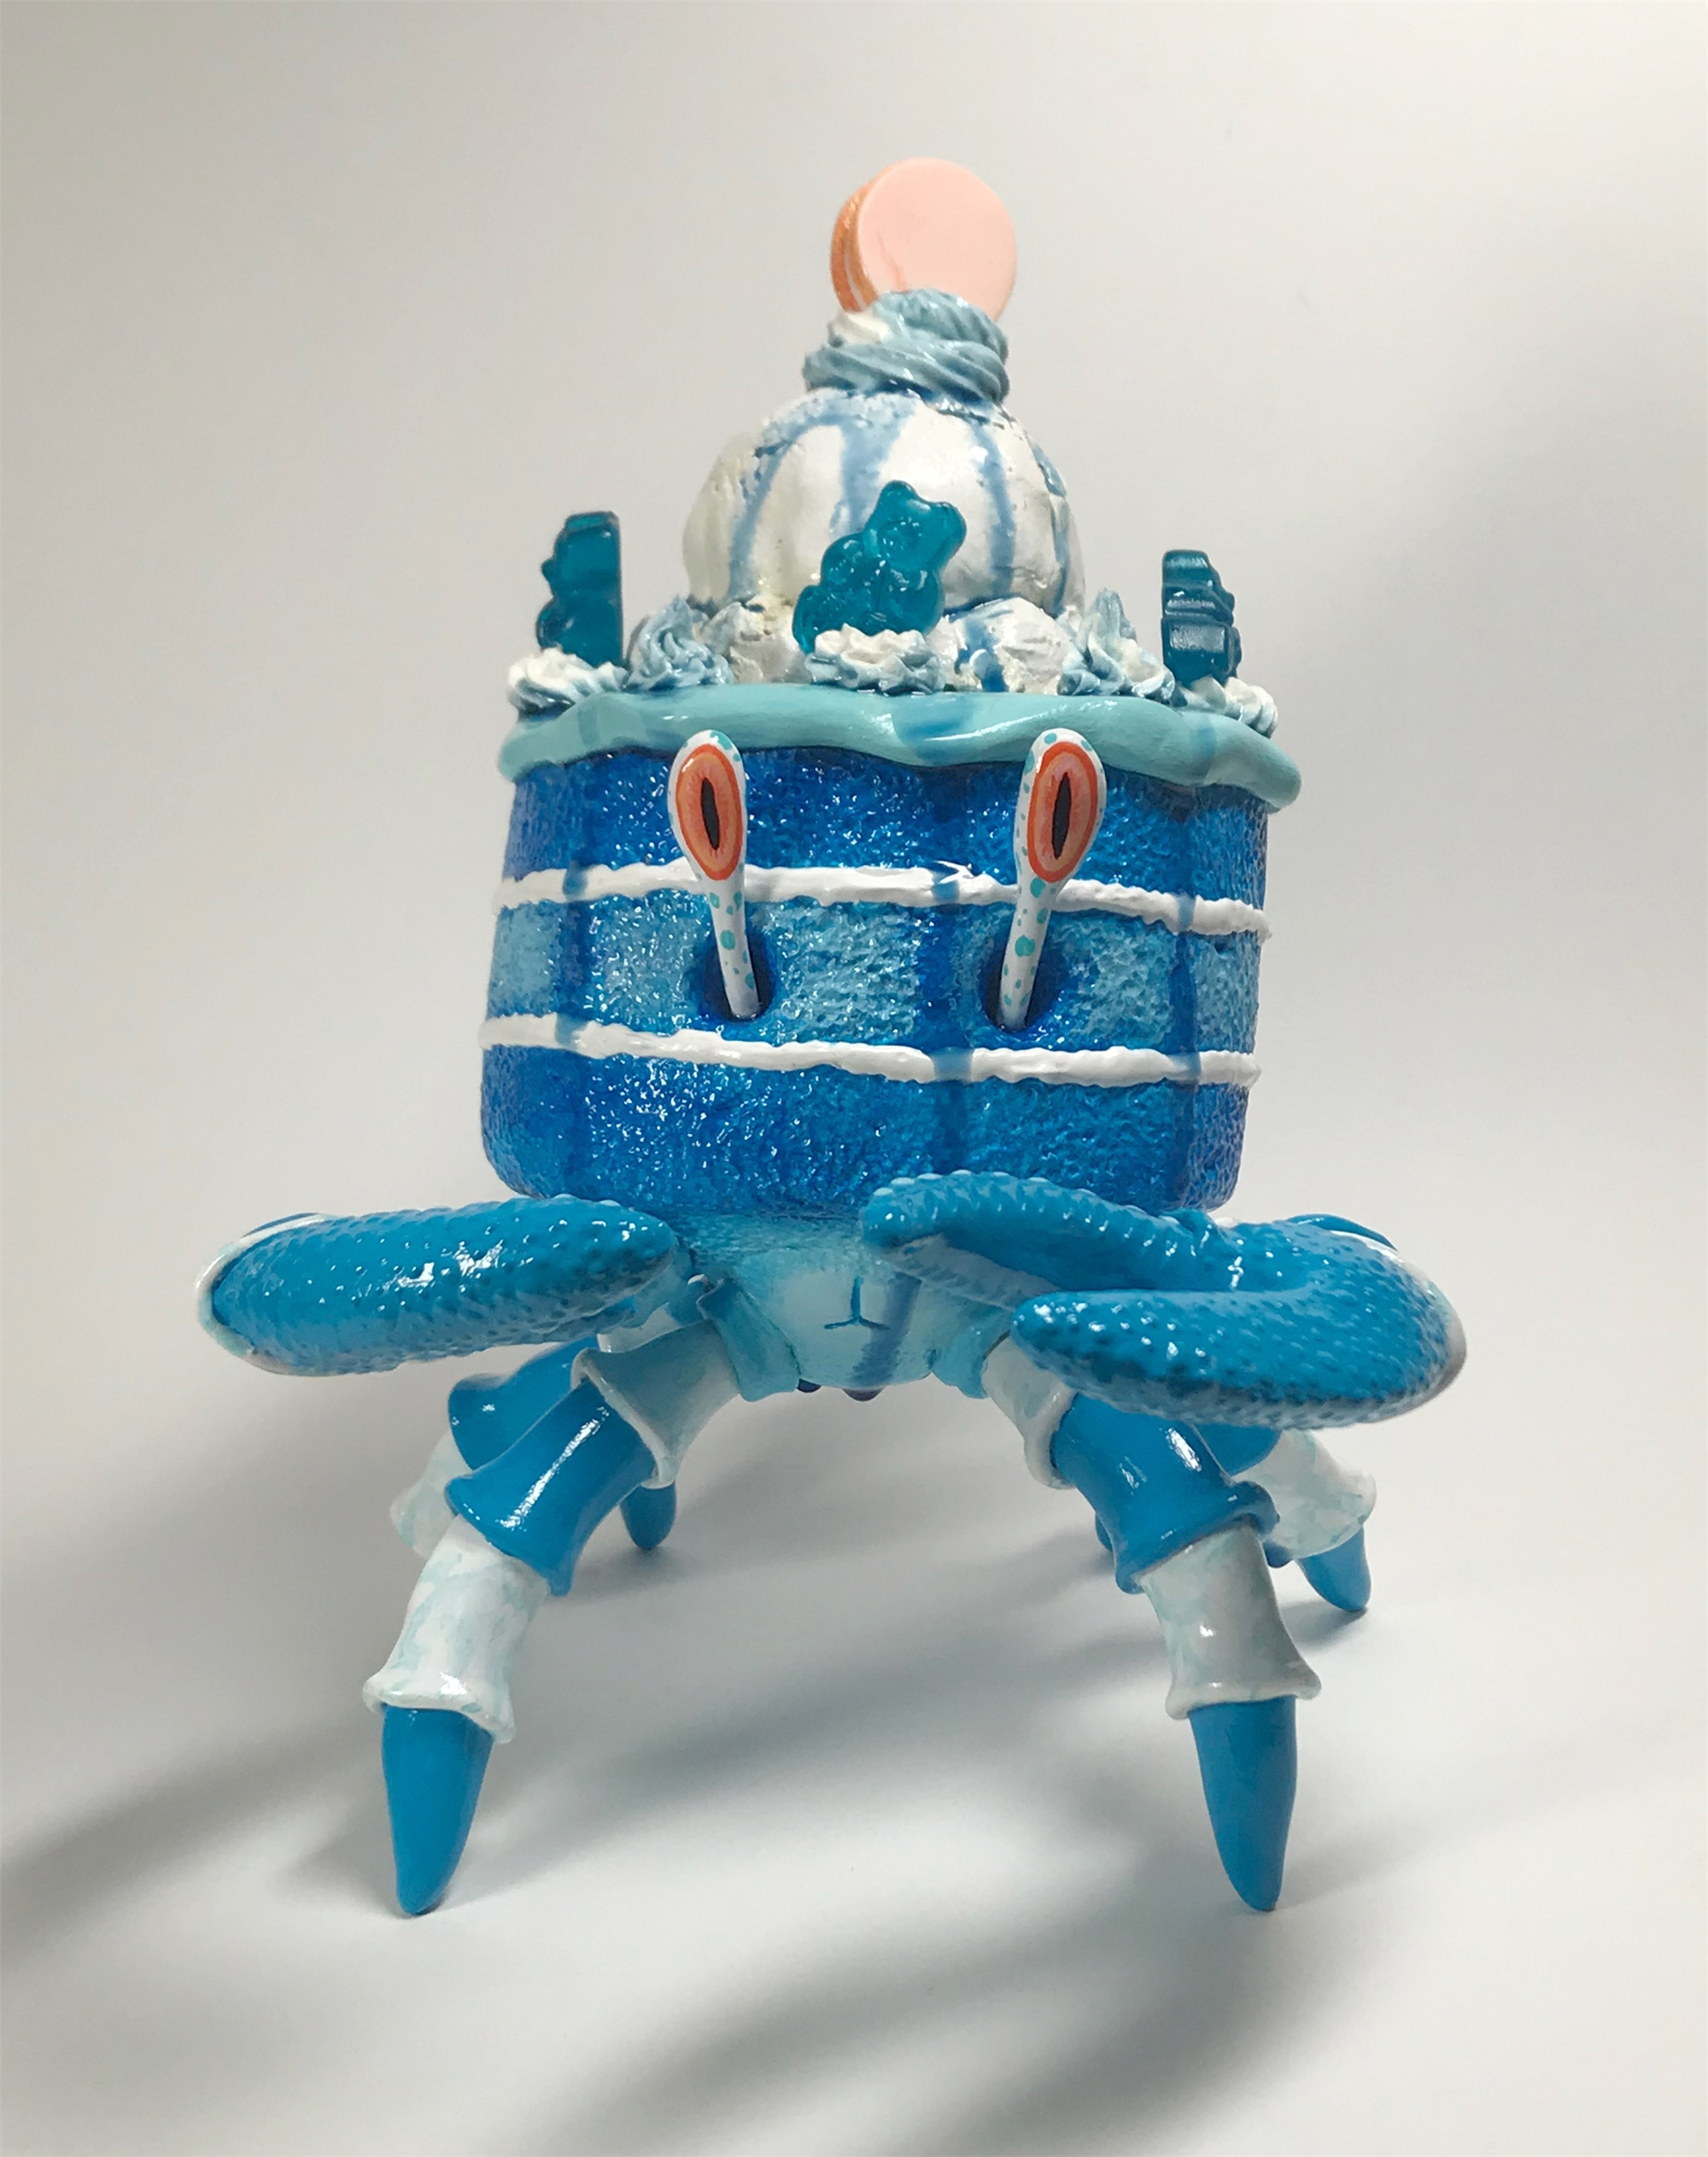 Blue Raspberry Crabcake by Corina St. Martin